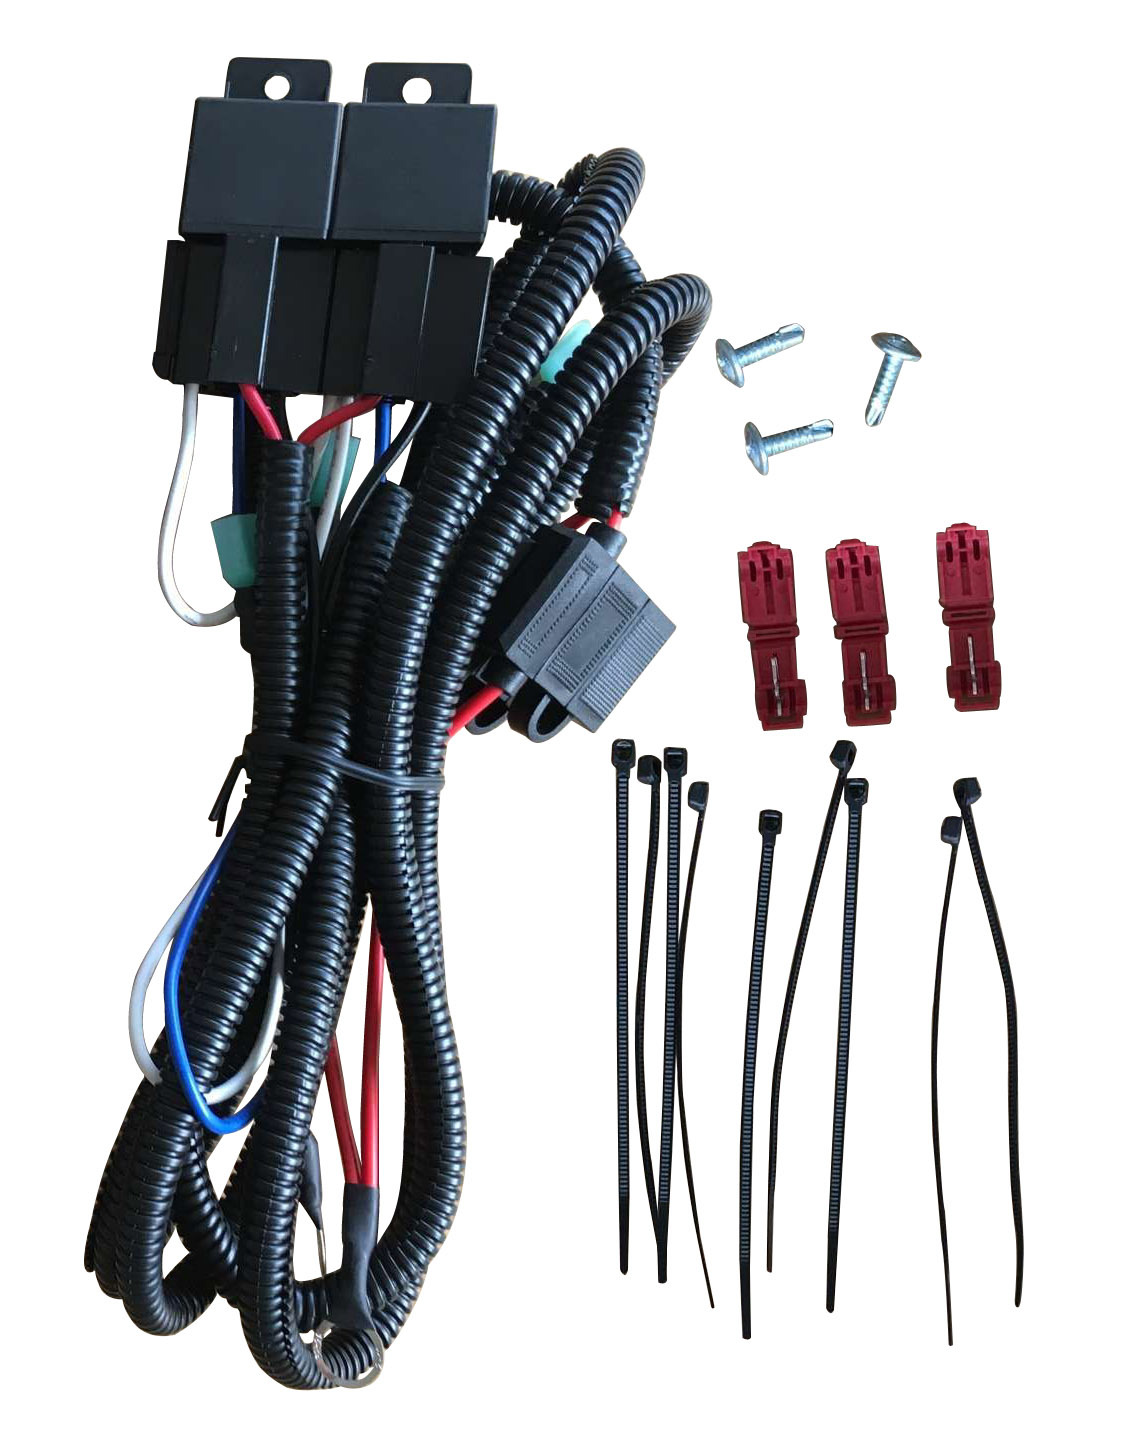 03 06 chevy gmc headlight wire harness kits